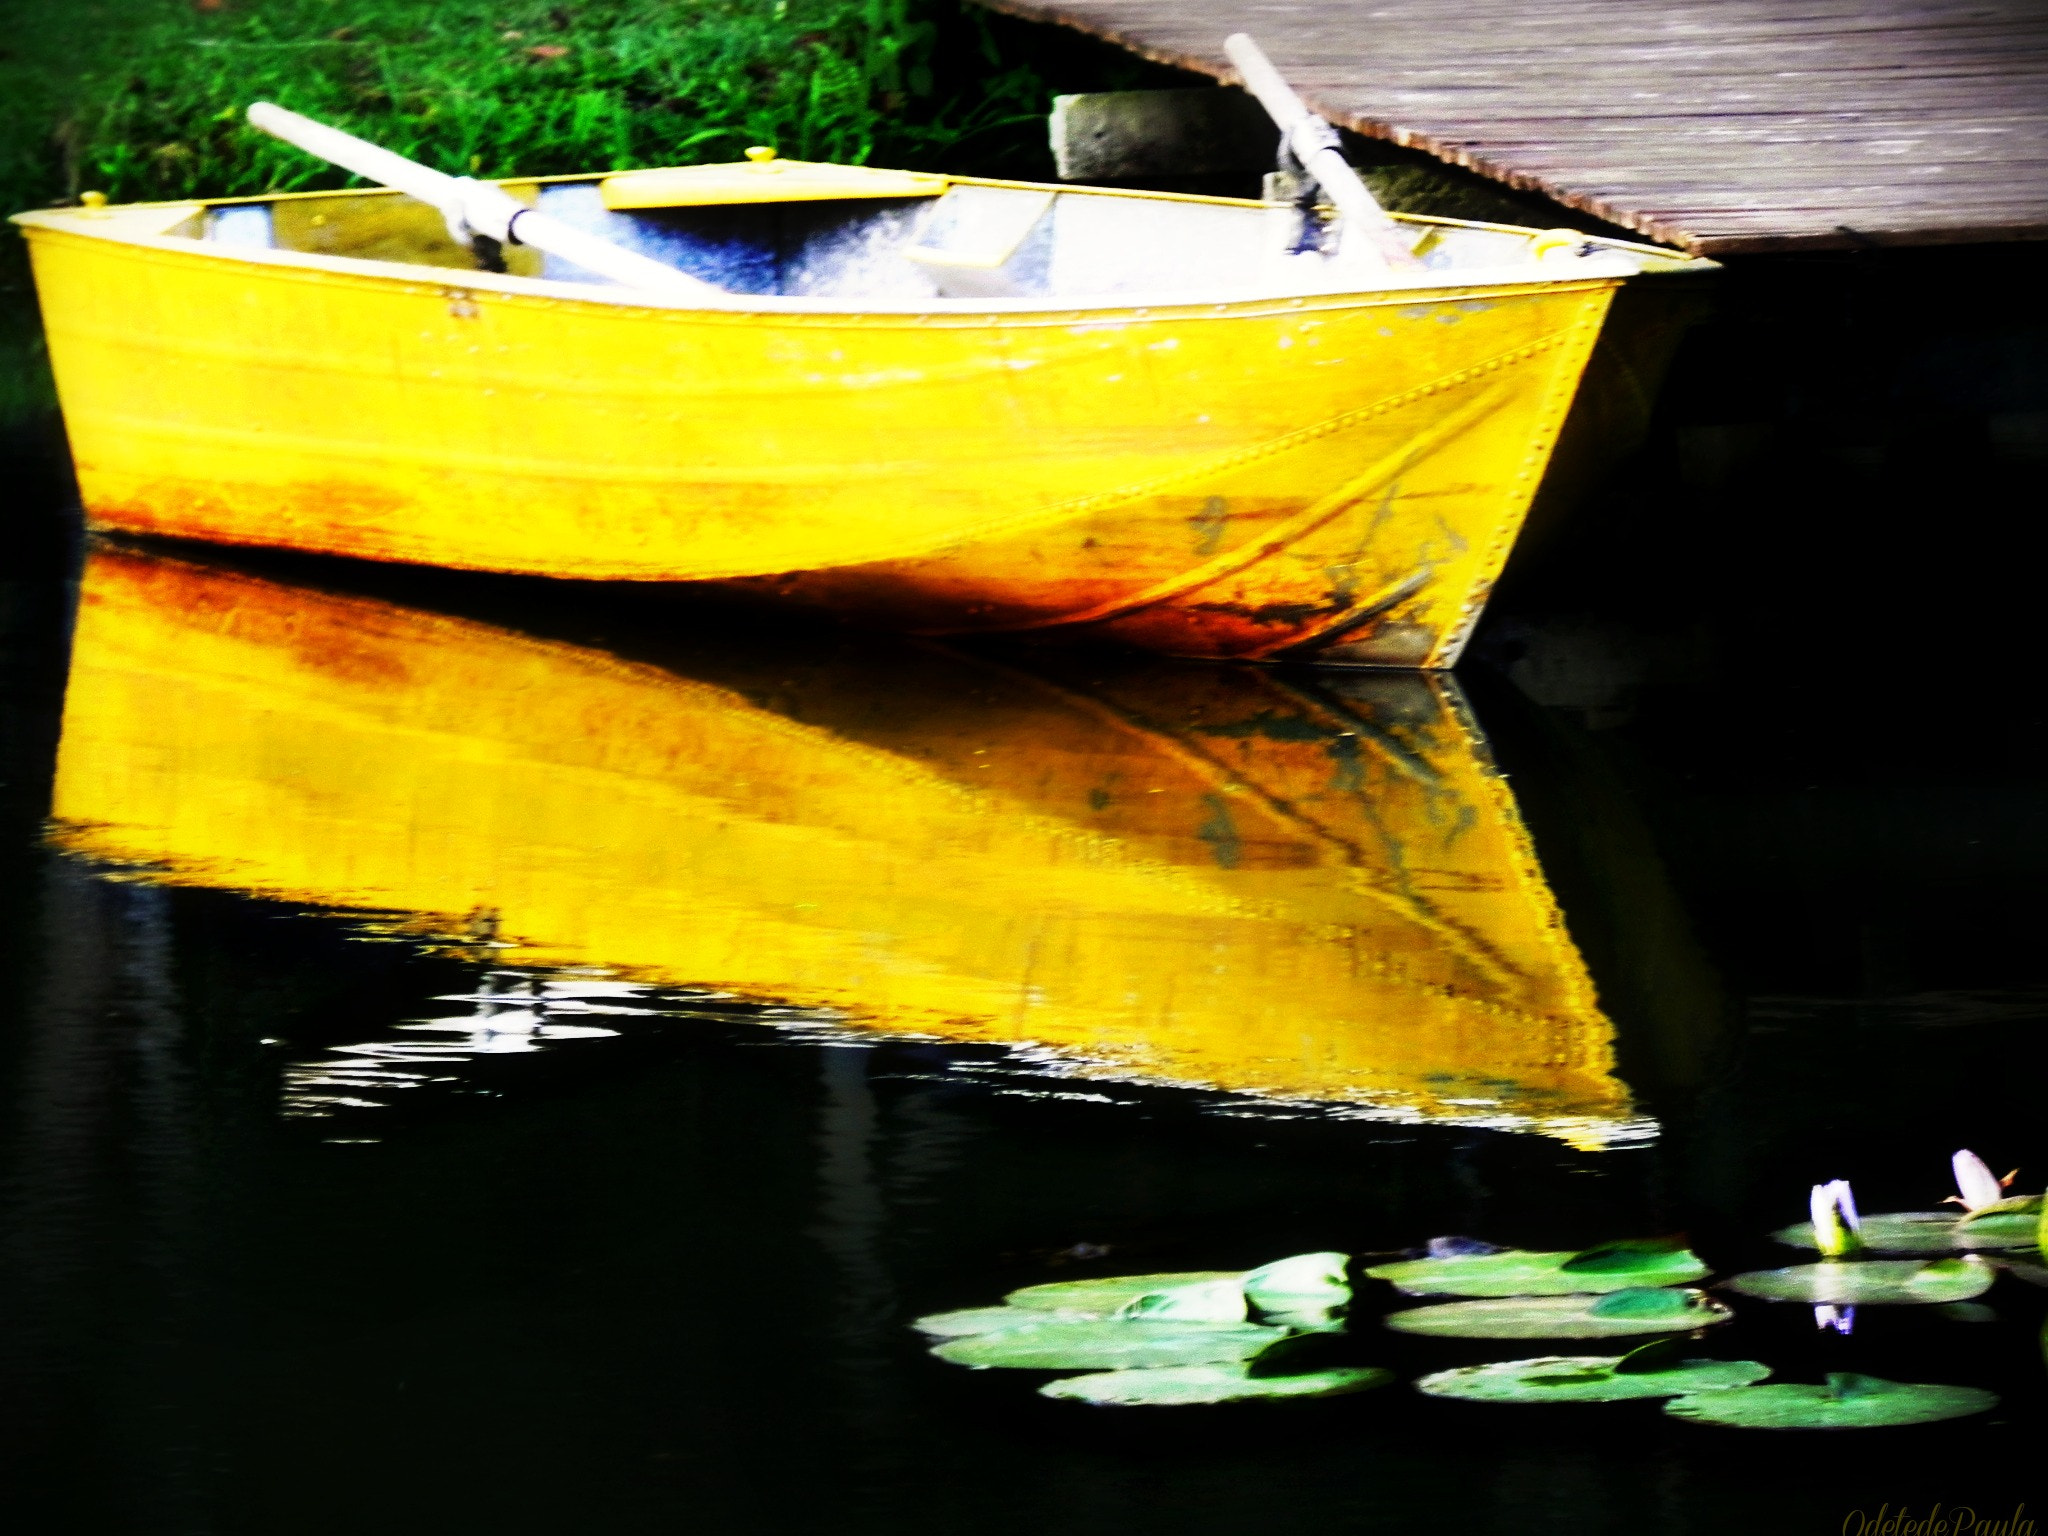 Photograph o barco amarelo by Odete Paula on 500px